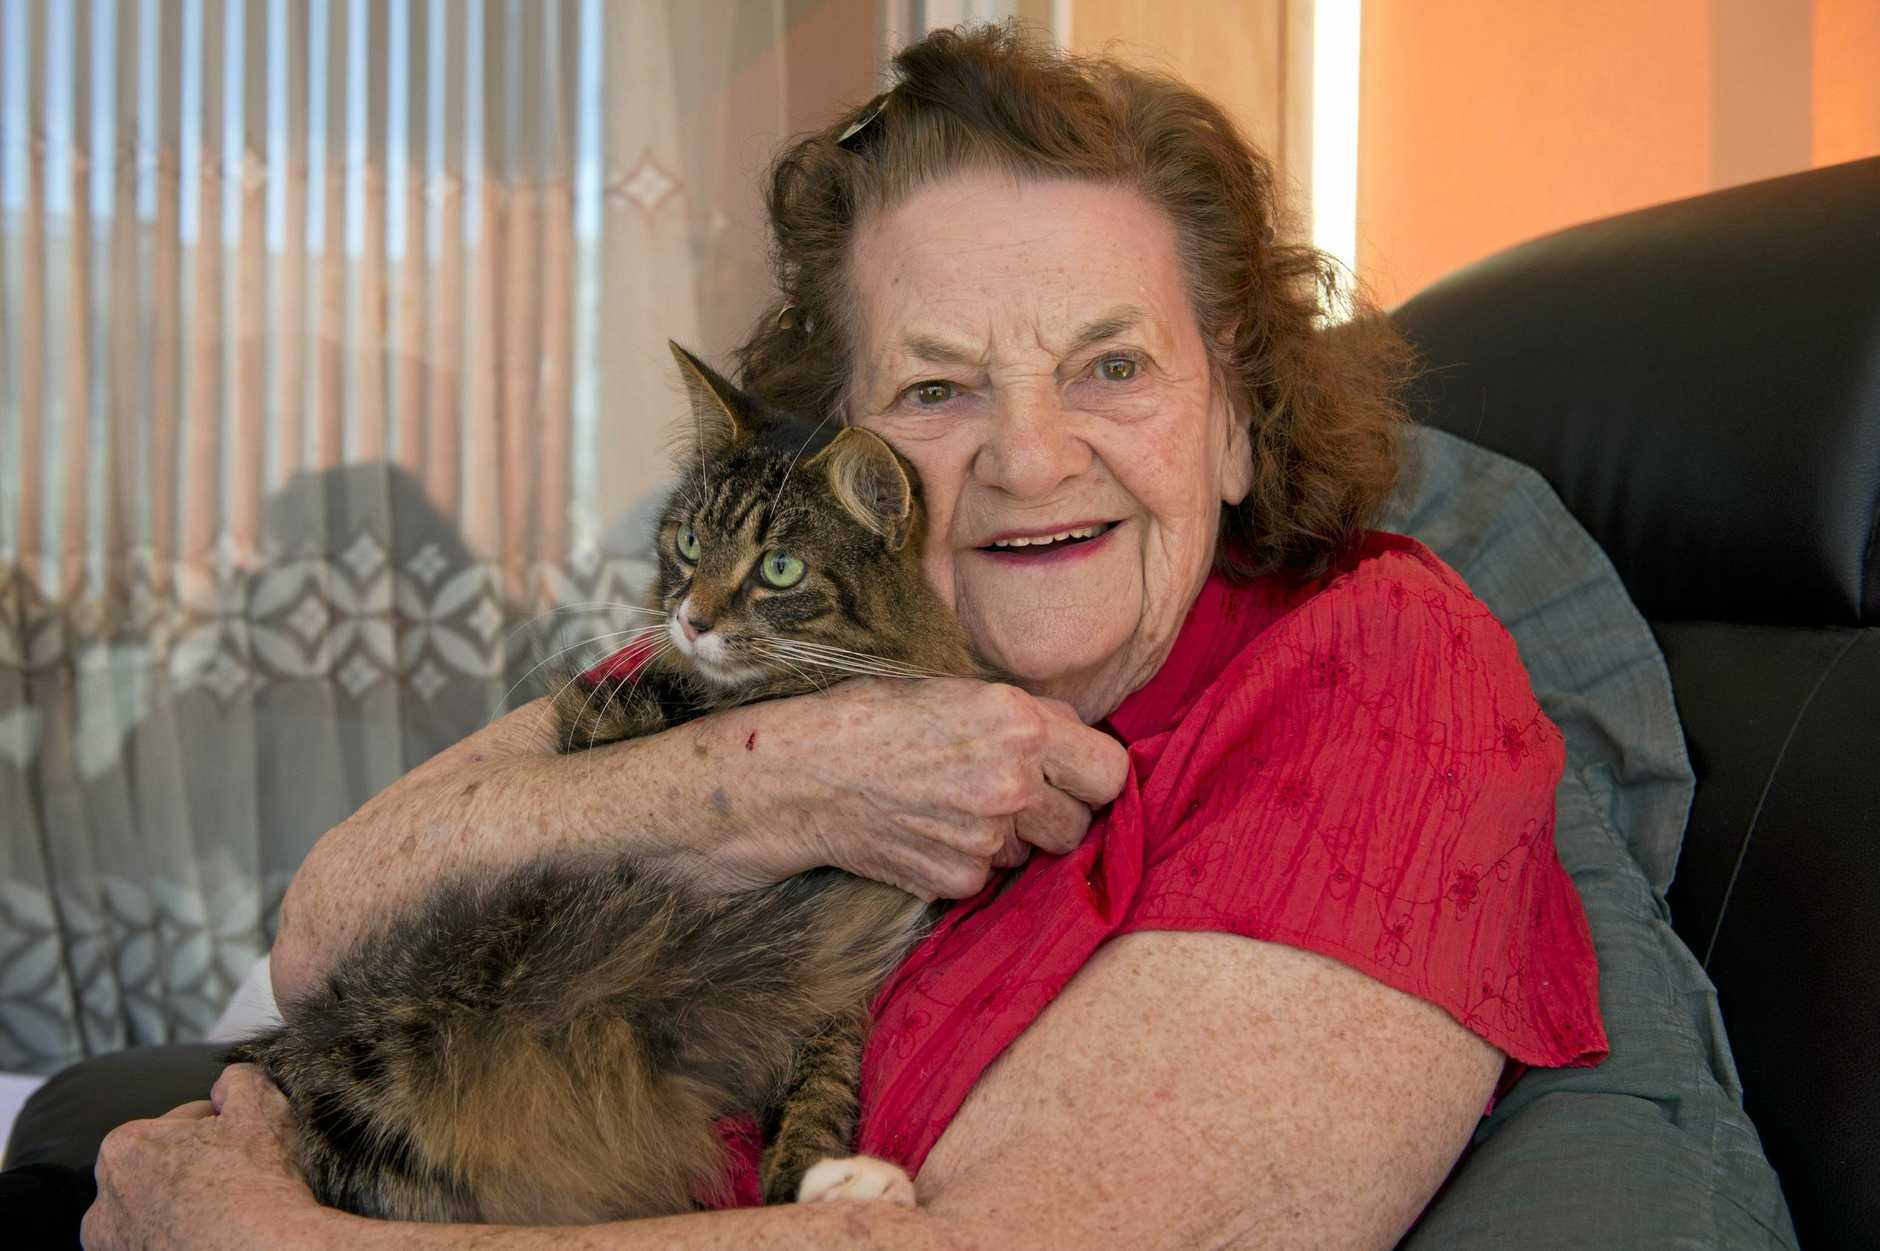 IN MEMORY: Avid reader and letter writer Joan Dunlop, with her cat Molly in 2014, has been remembered as a pragmatic woman with a love of community.